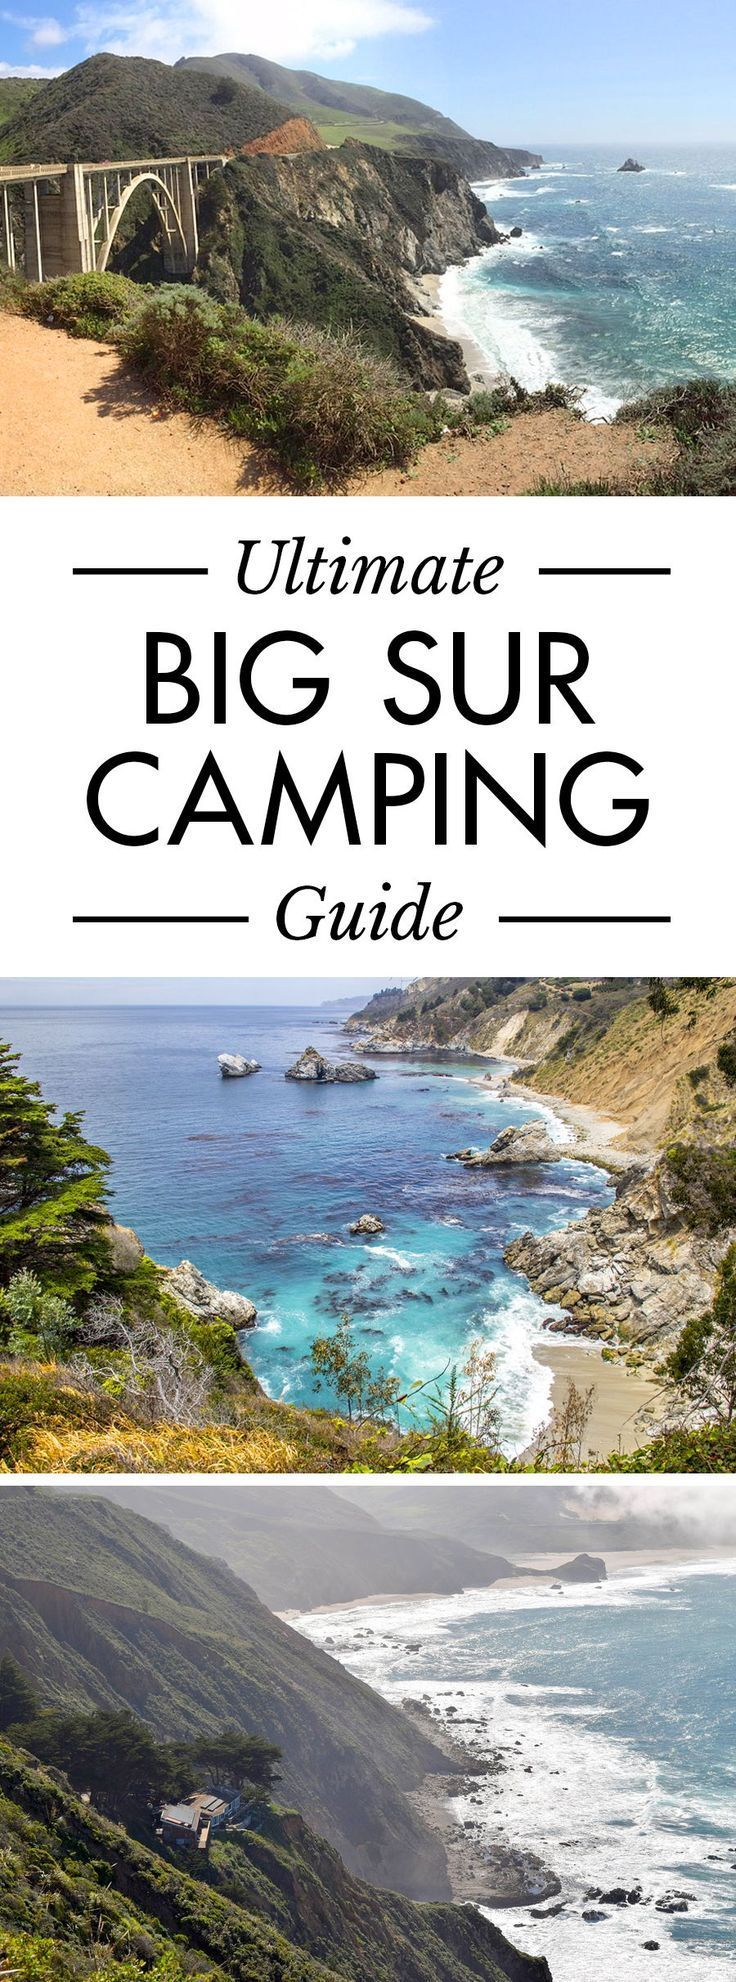 Photo of The ultimate camping guide for Big Sur